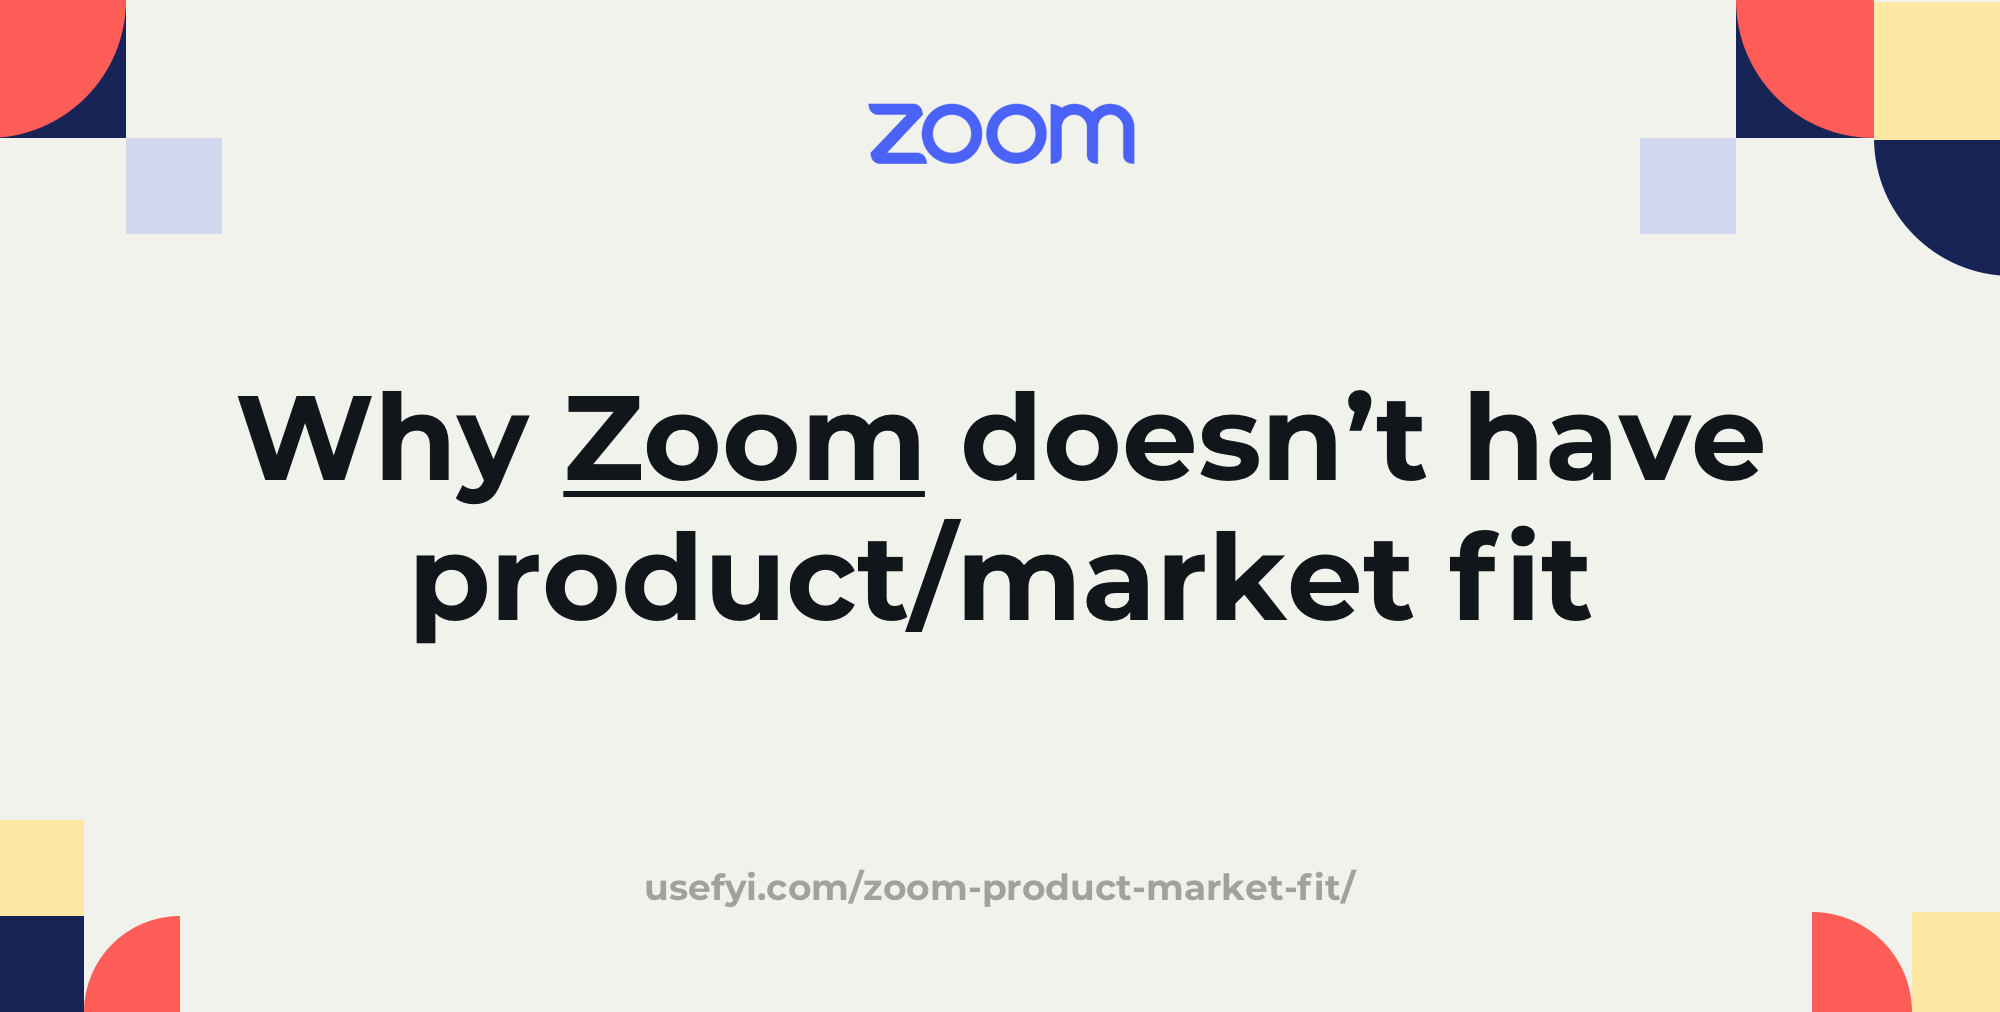 Why Zoom does not have product-market fit